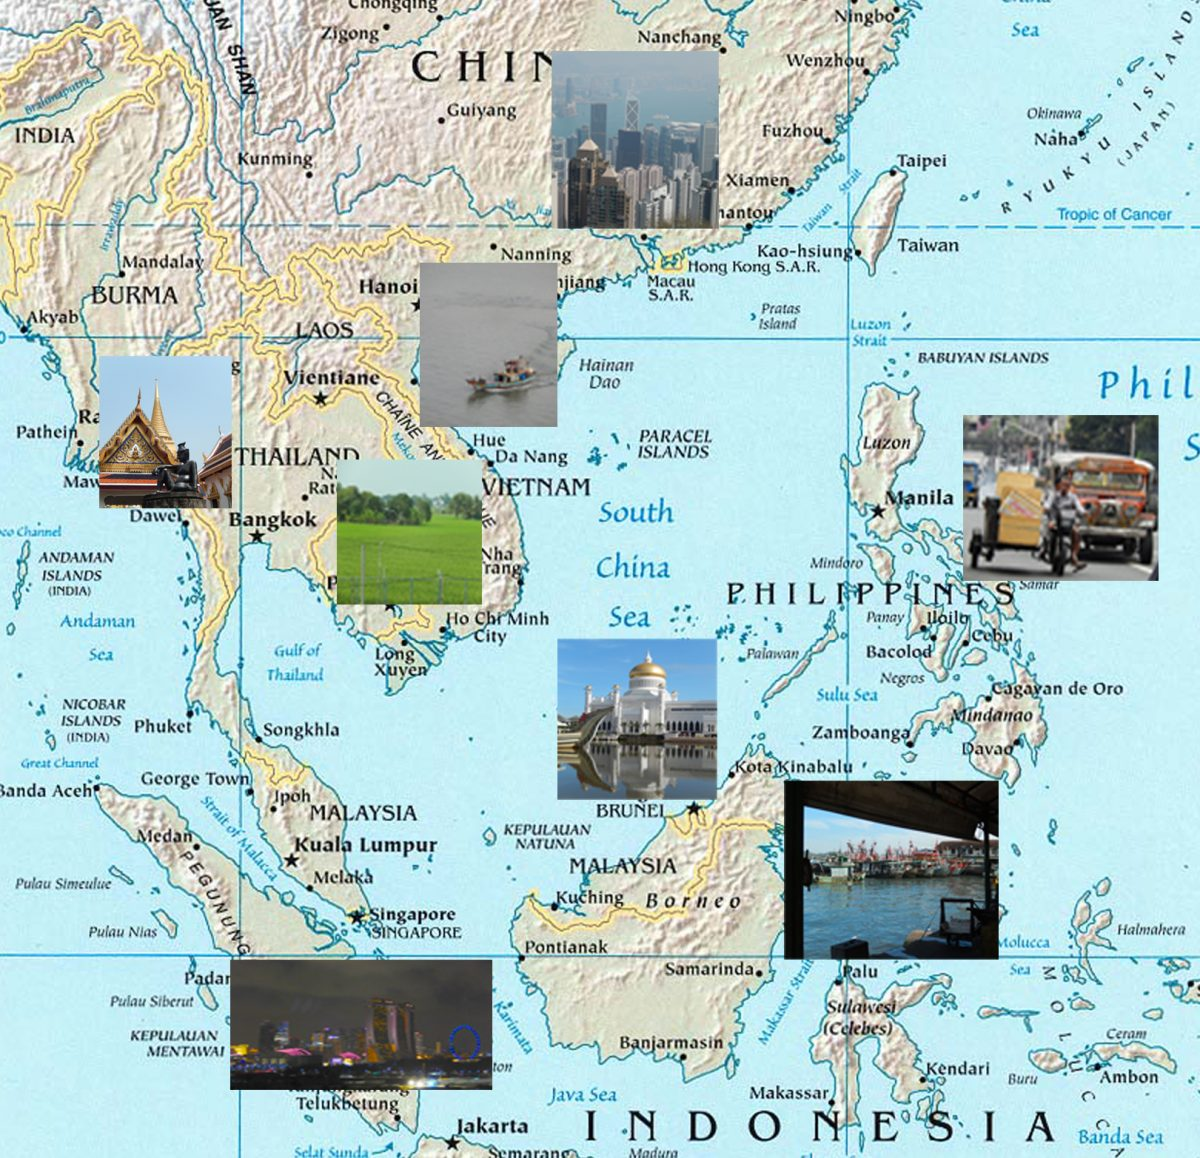 cropped-southeast_asia_map.jpg